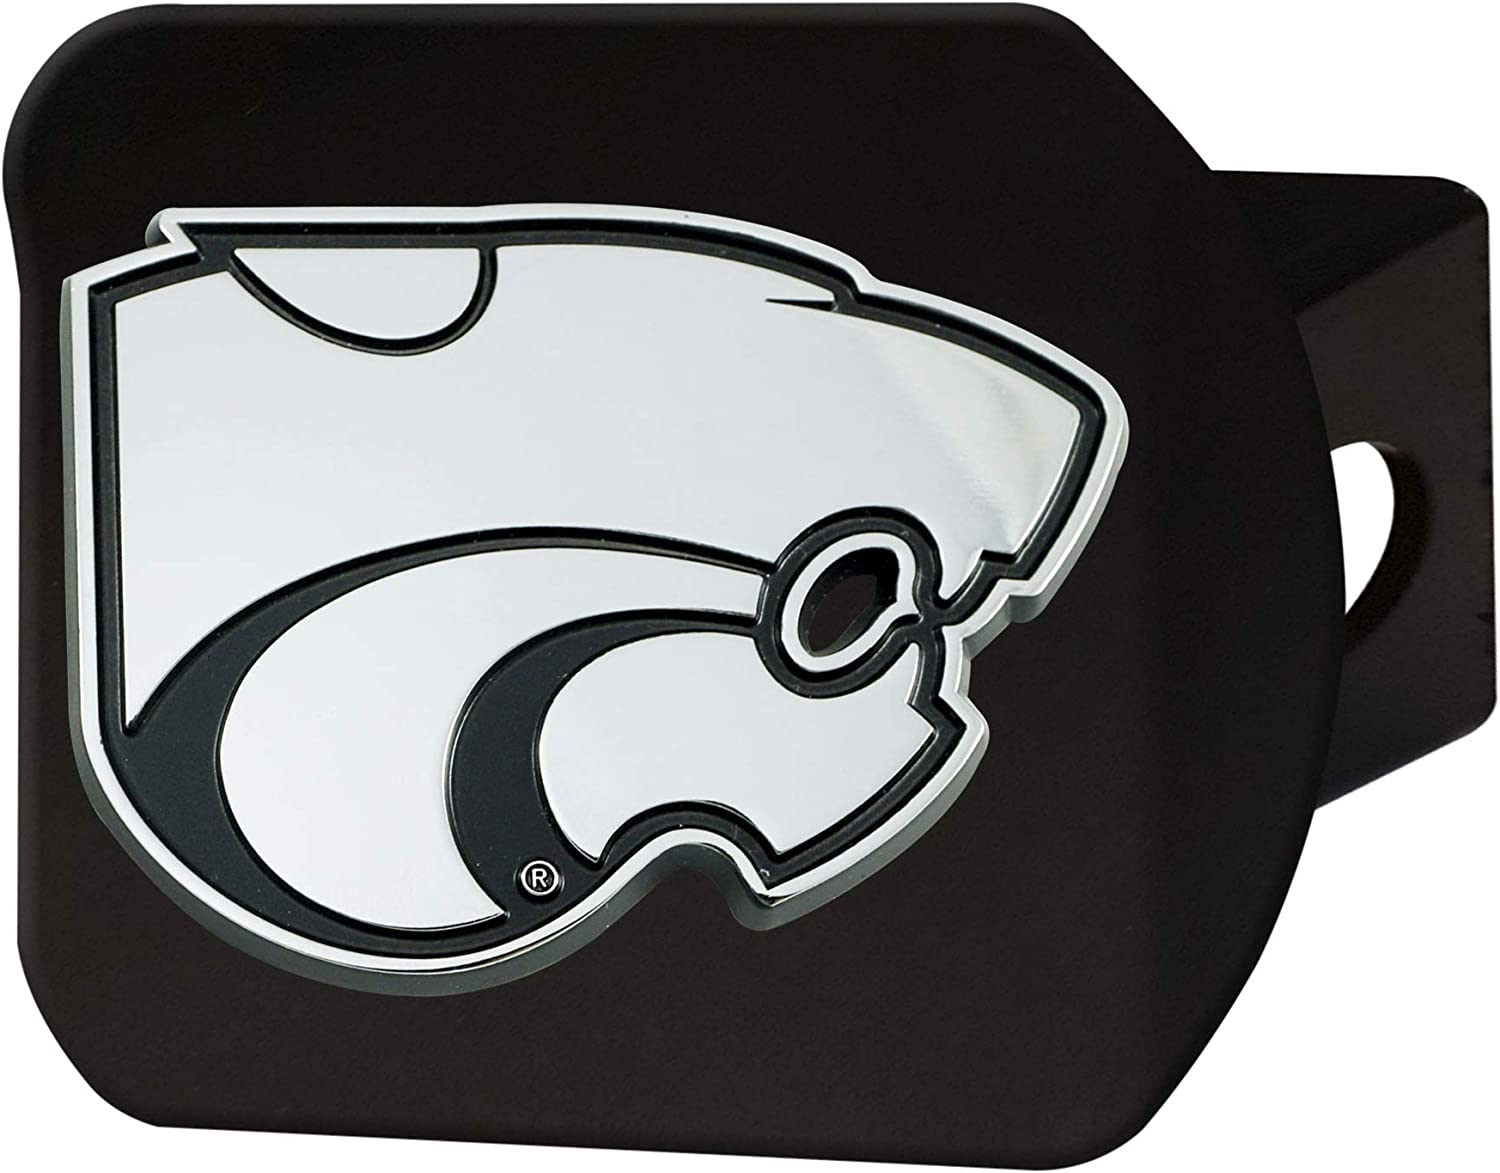 FANMATS NCAA Unisex-Adult Hitch Cover - Black